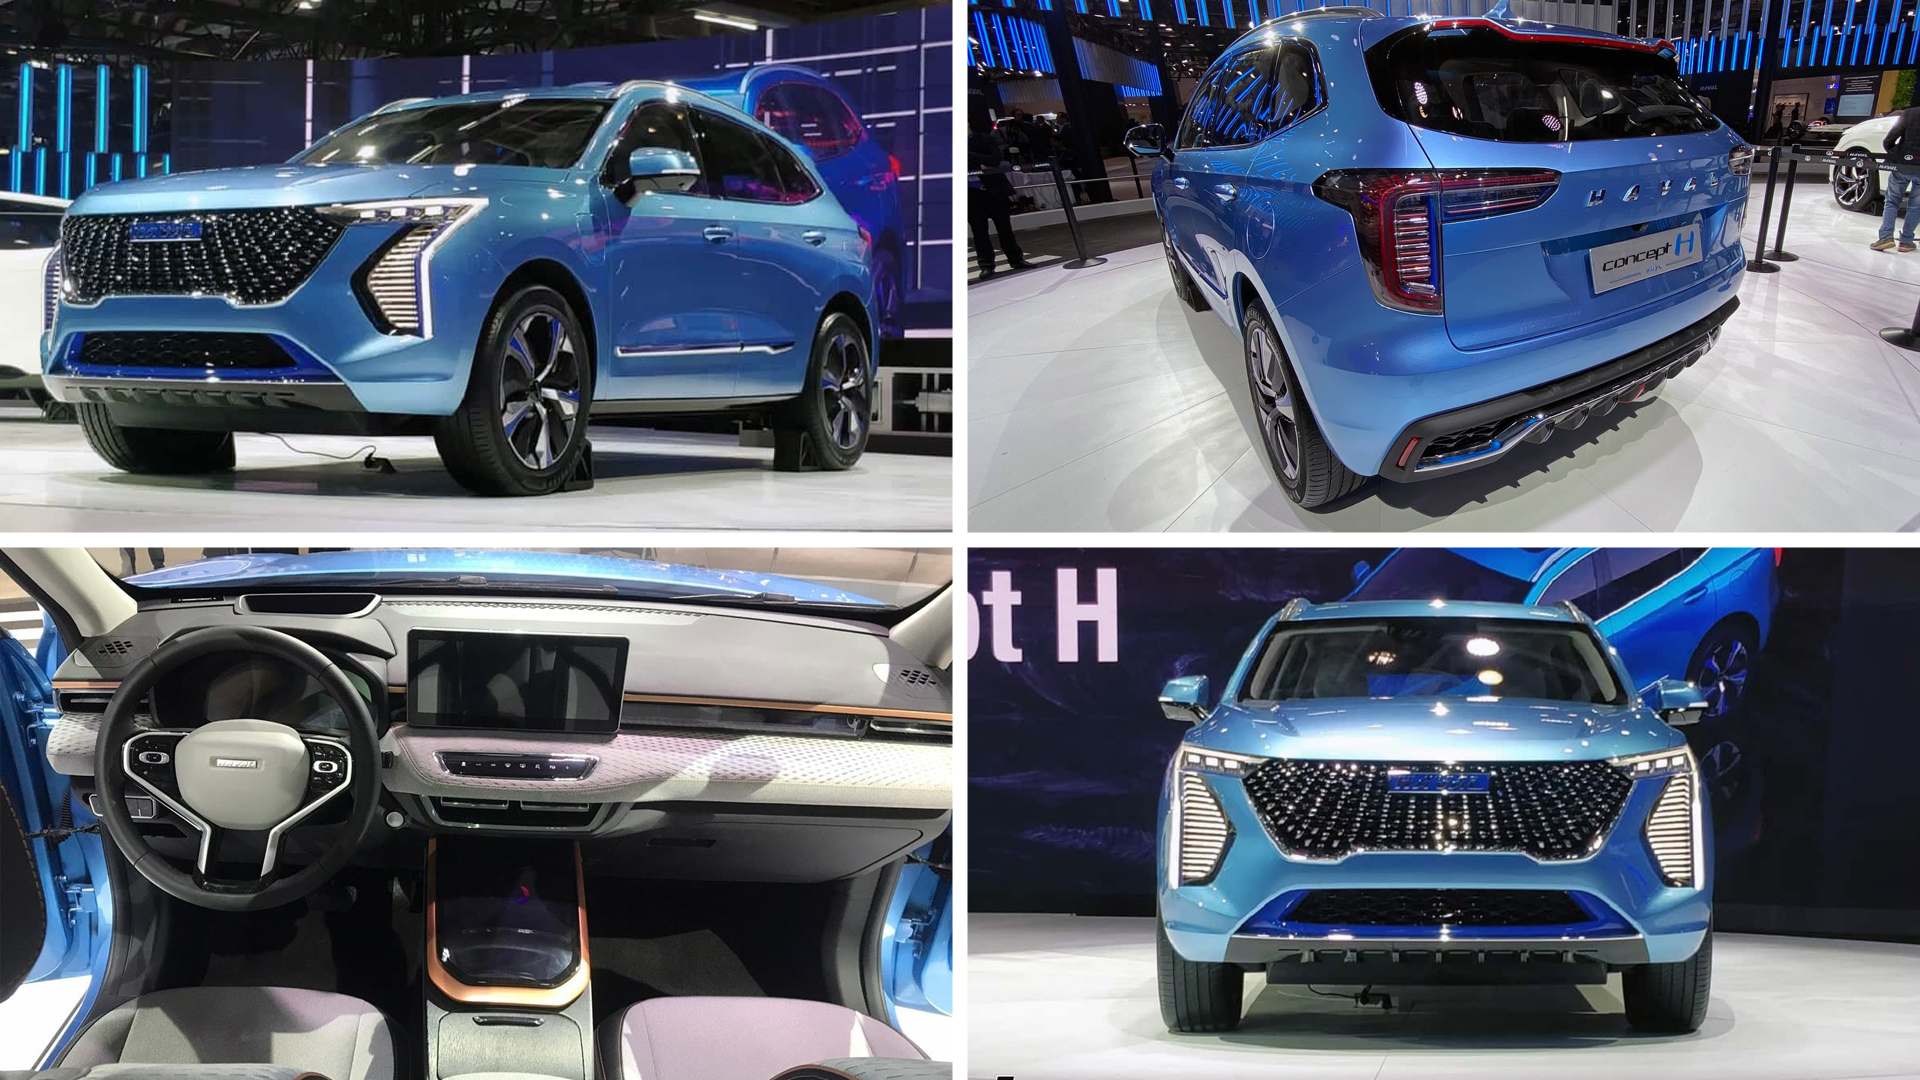 Haval Concept H Plug-in Hybrid Electric SUV